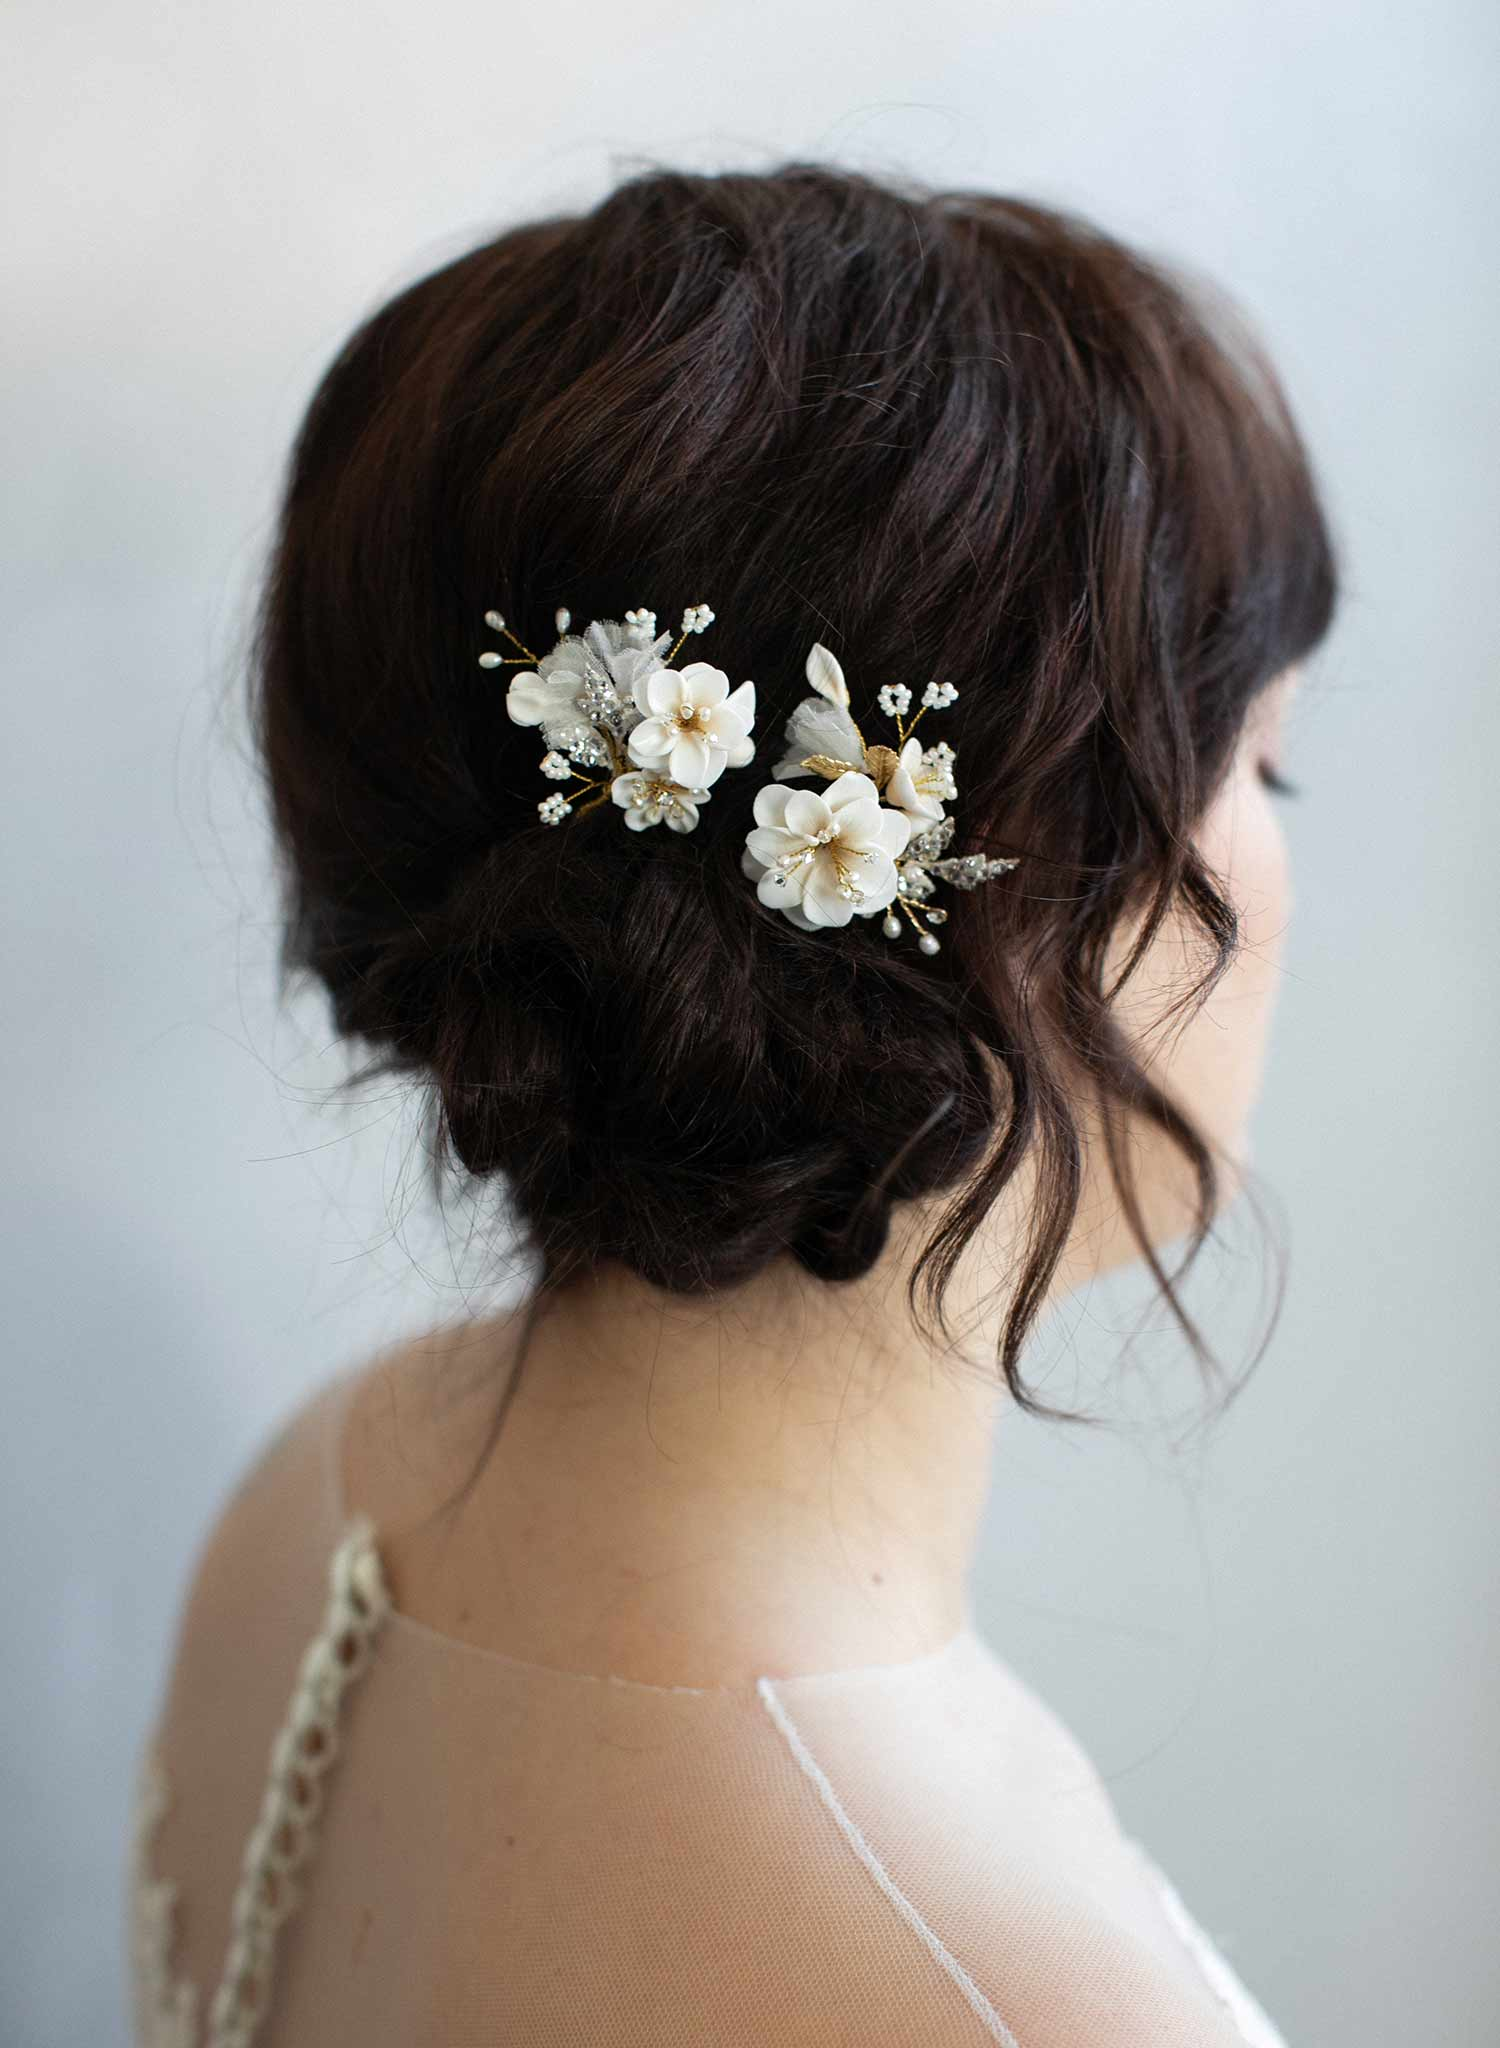 Creamy blossom hair pin set of 2 - Style #925